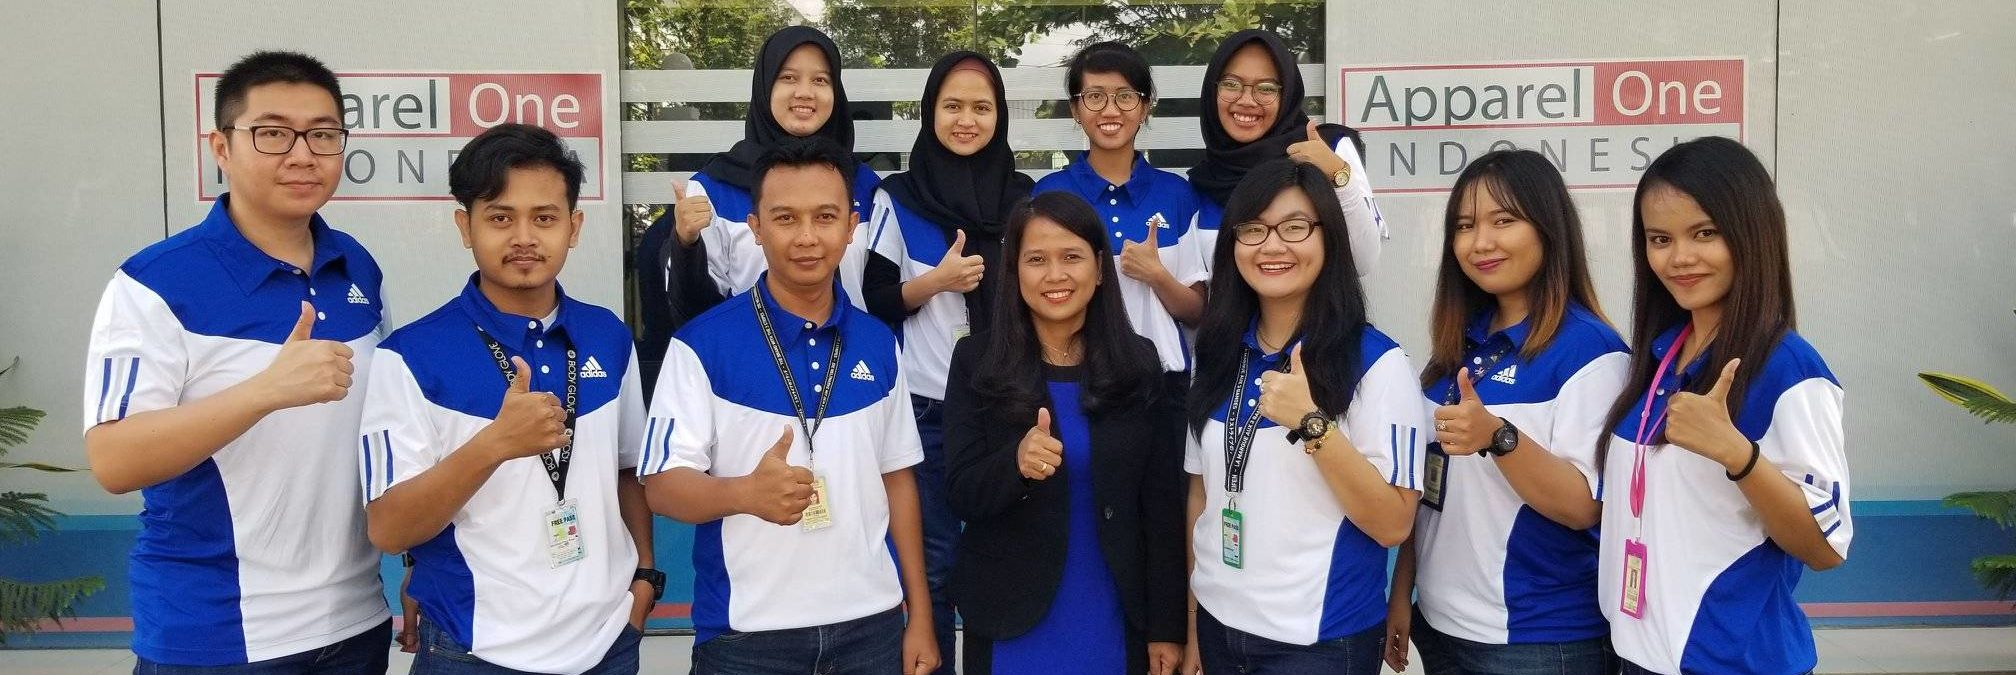 Group photo of newly qualified GSDCost practitioners in Apparel One Indonesia